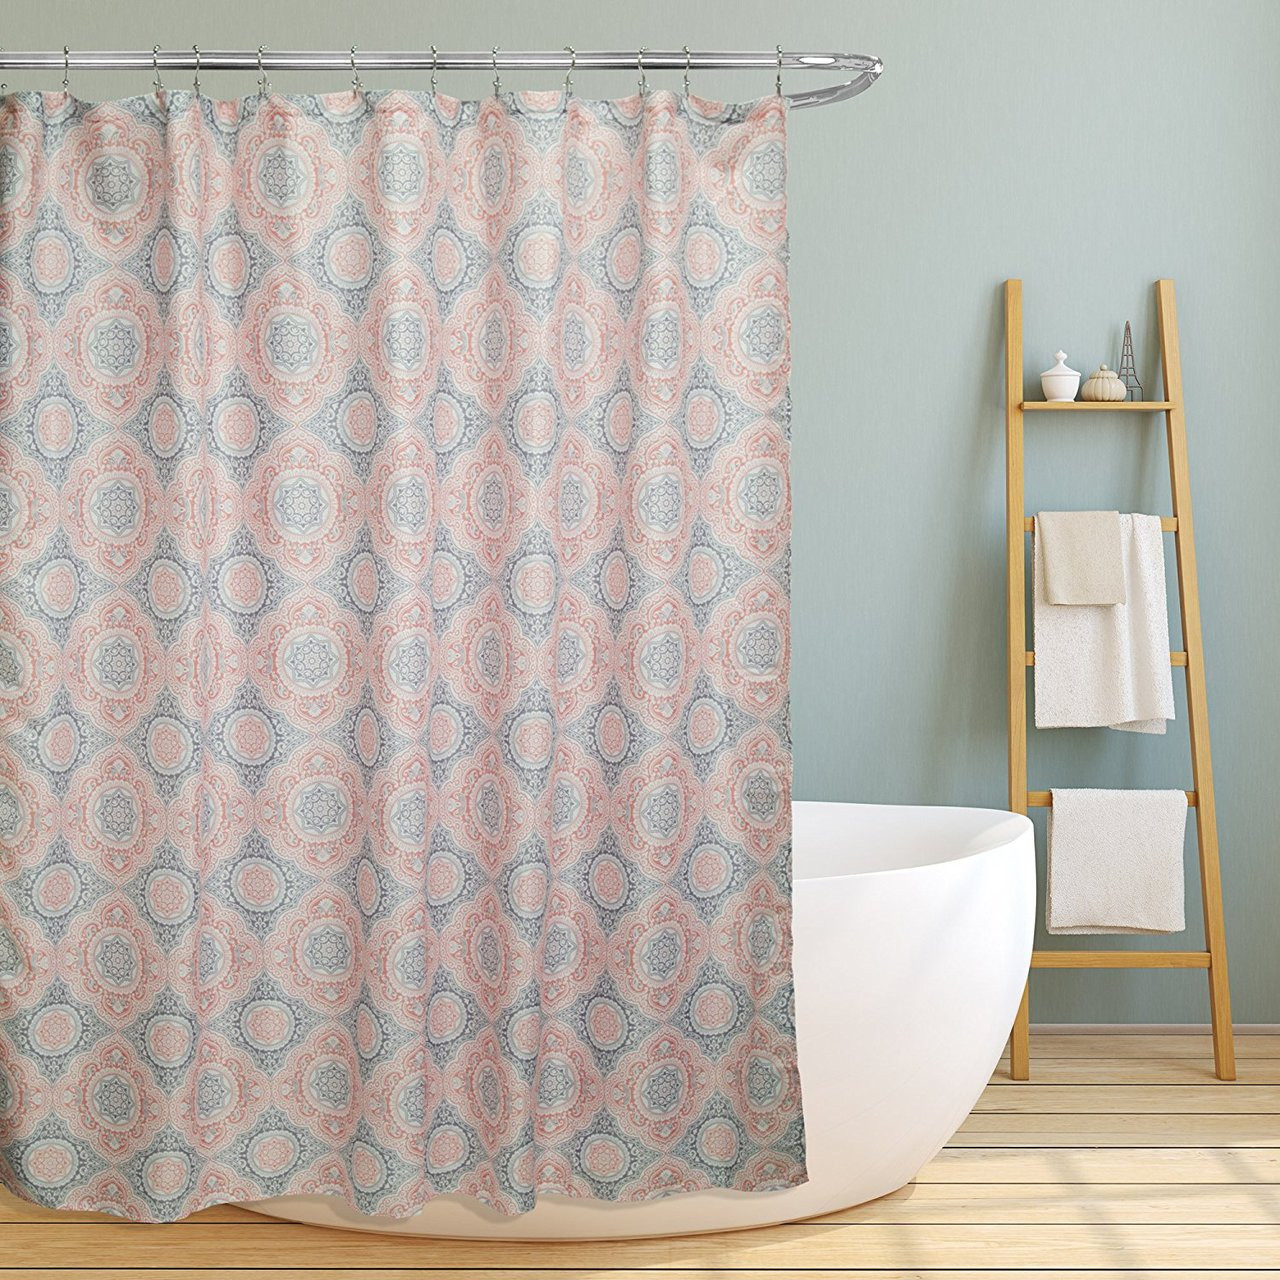 Linen Store Fabric Canvas Shower Curtain 70x70 Casey Contemporary Geometric